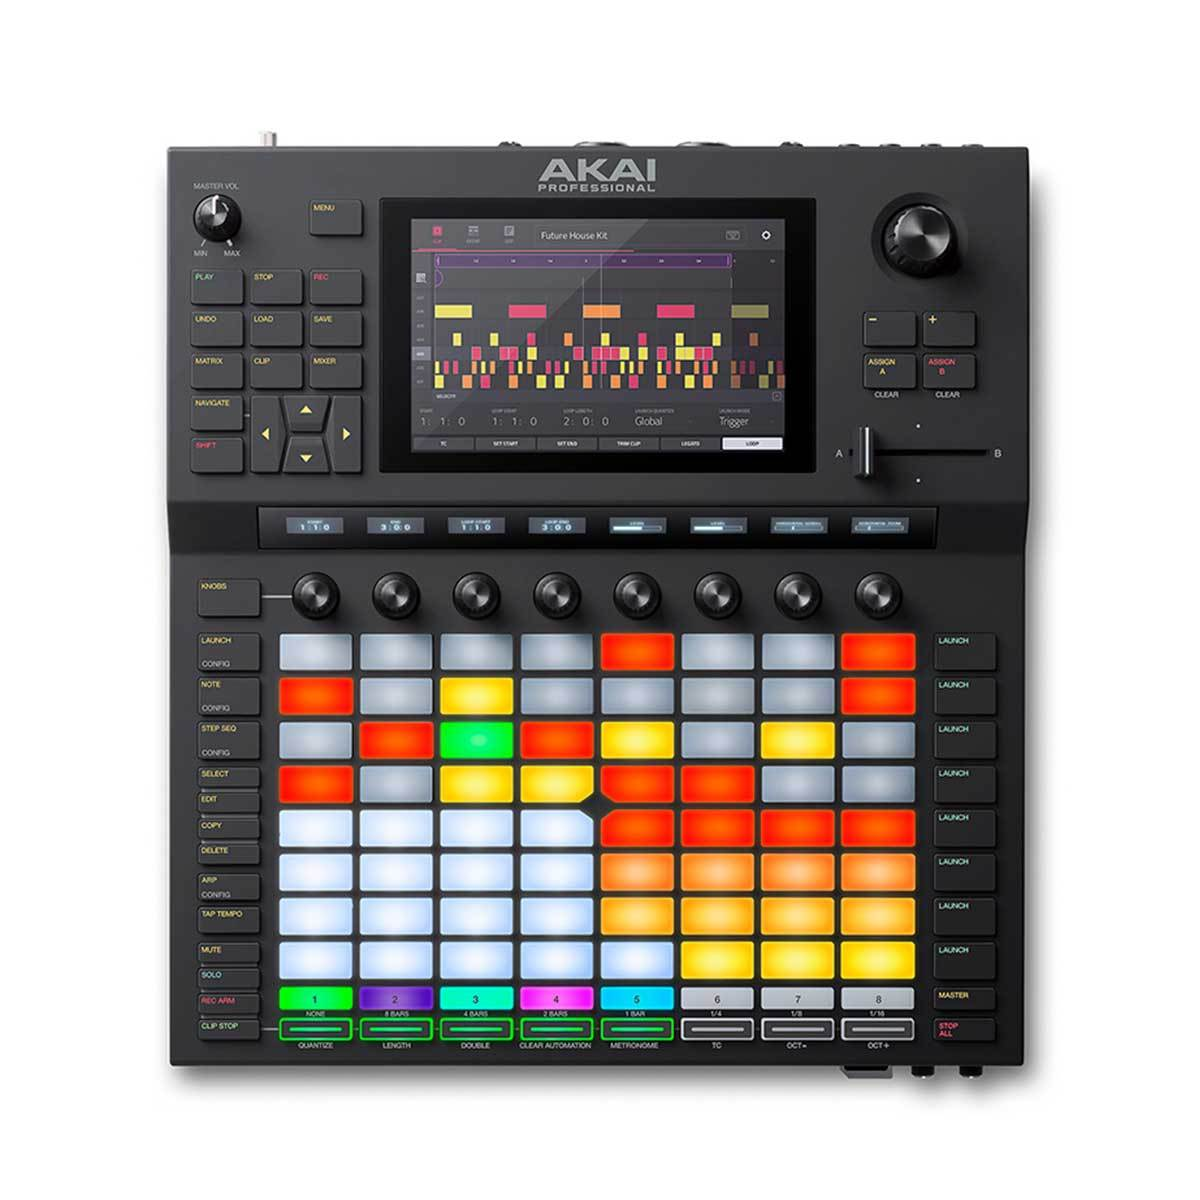 Akai Force Standalone Music Production & DJ Performance System